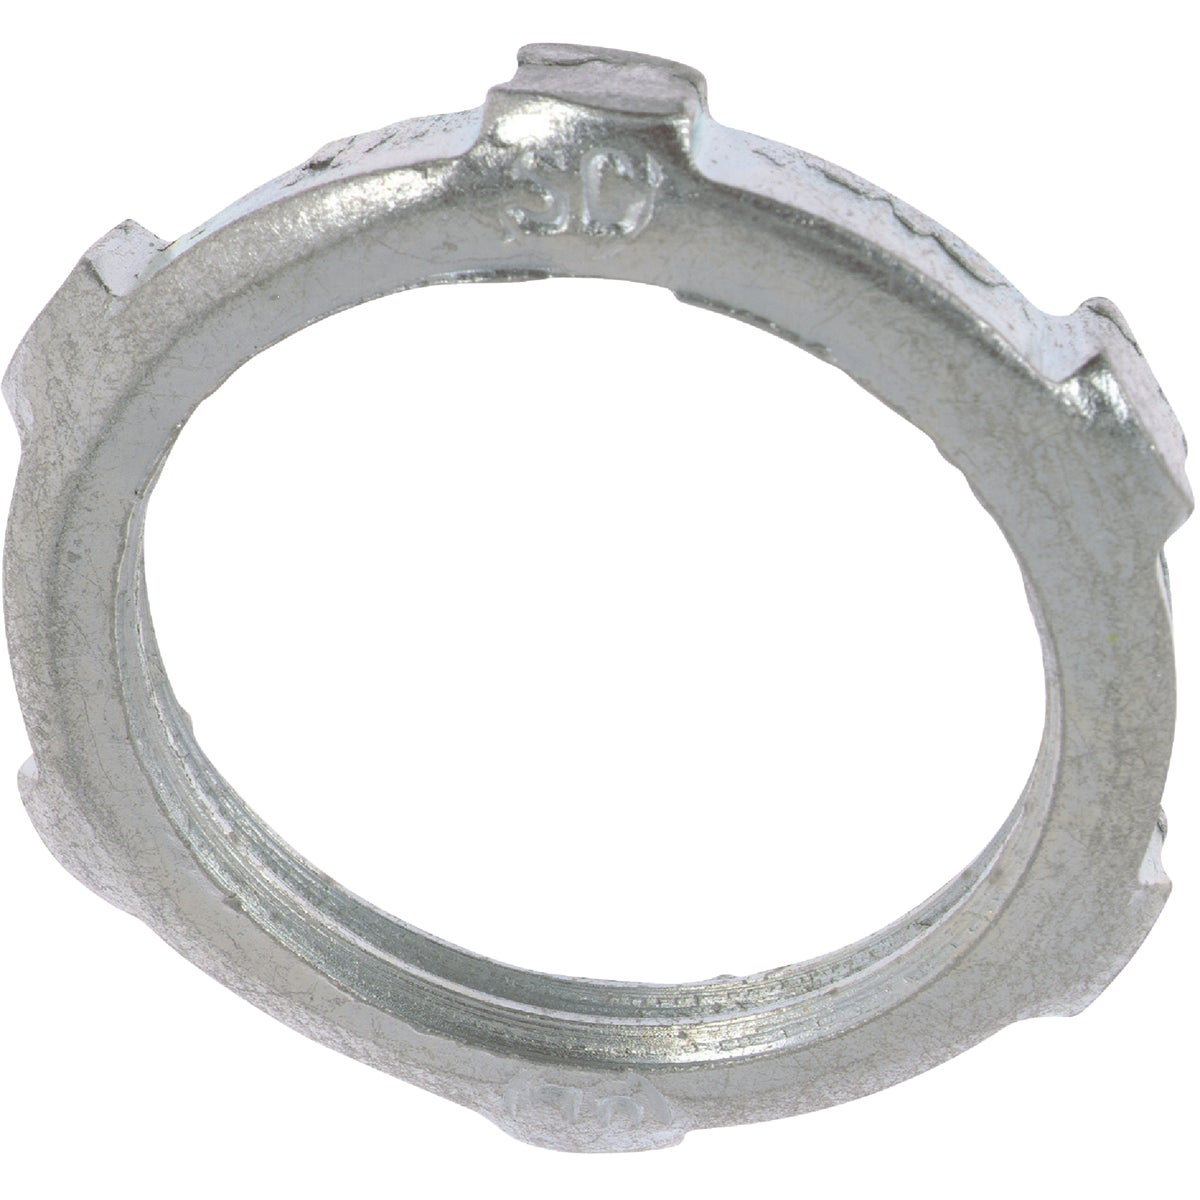 "2PK 1-1/2"" LOCKNUT - LN1052 by Thomas & Betts"